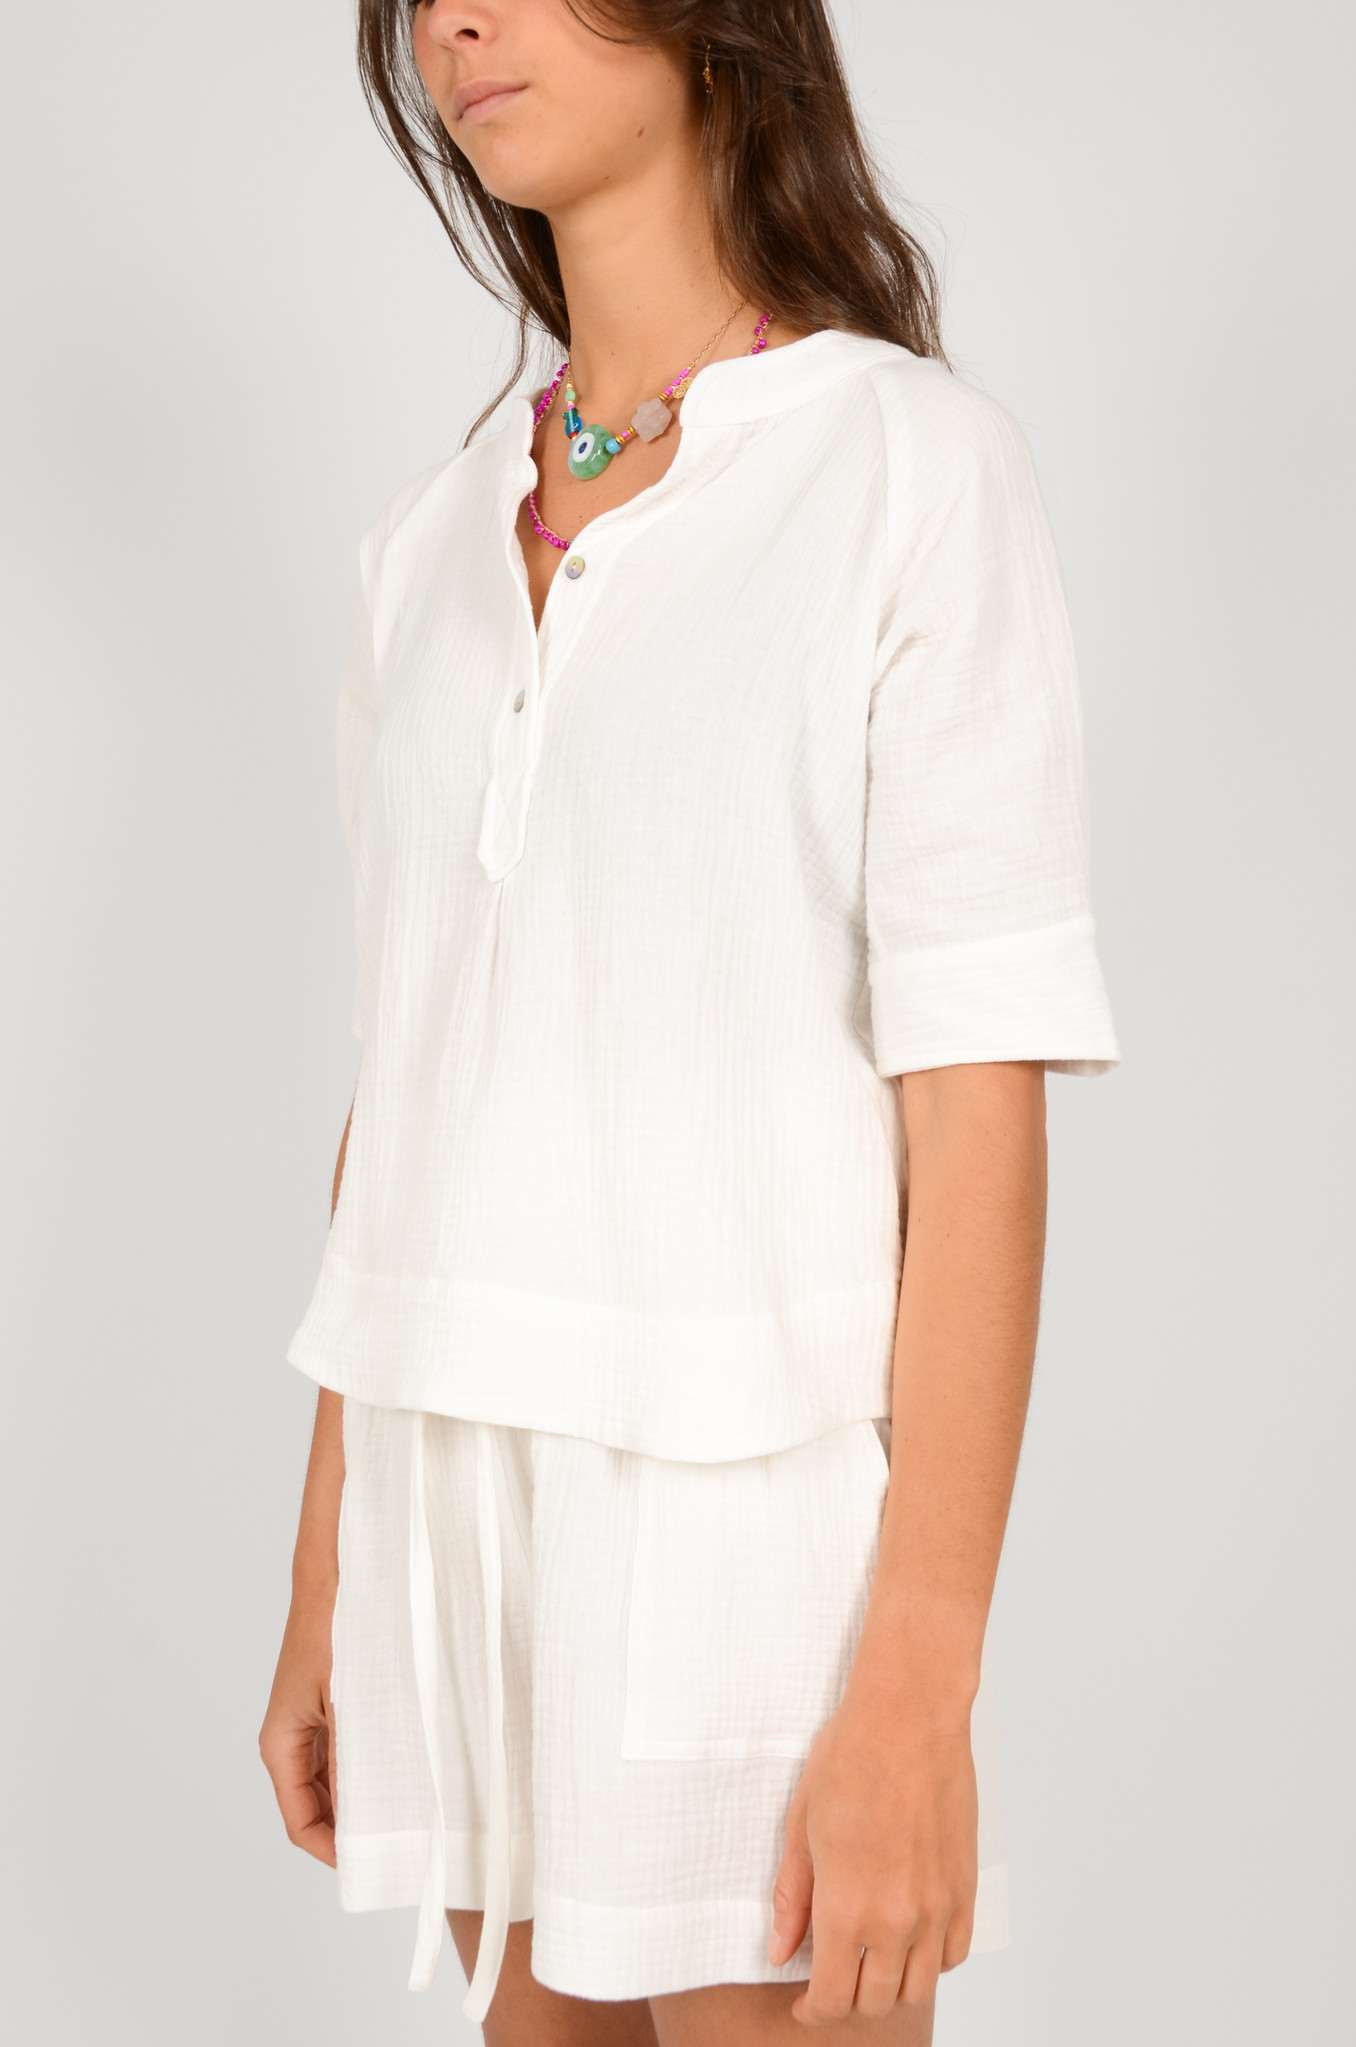 THEA SHIRT IN WHITE-2